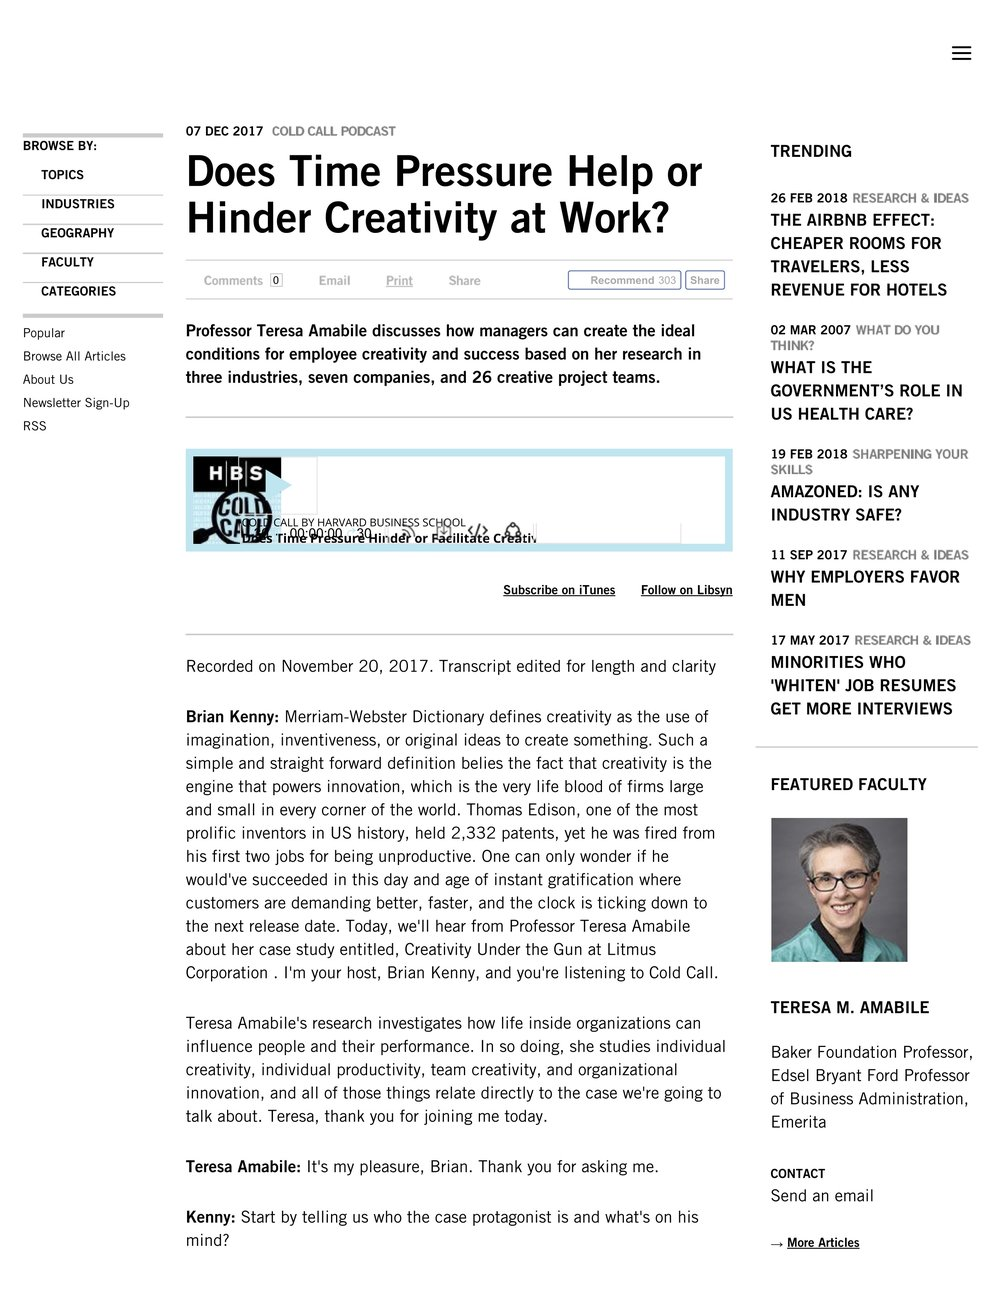 Does Time Pressure Help or Hinder Creativity at Work? -